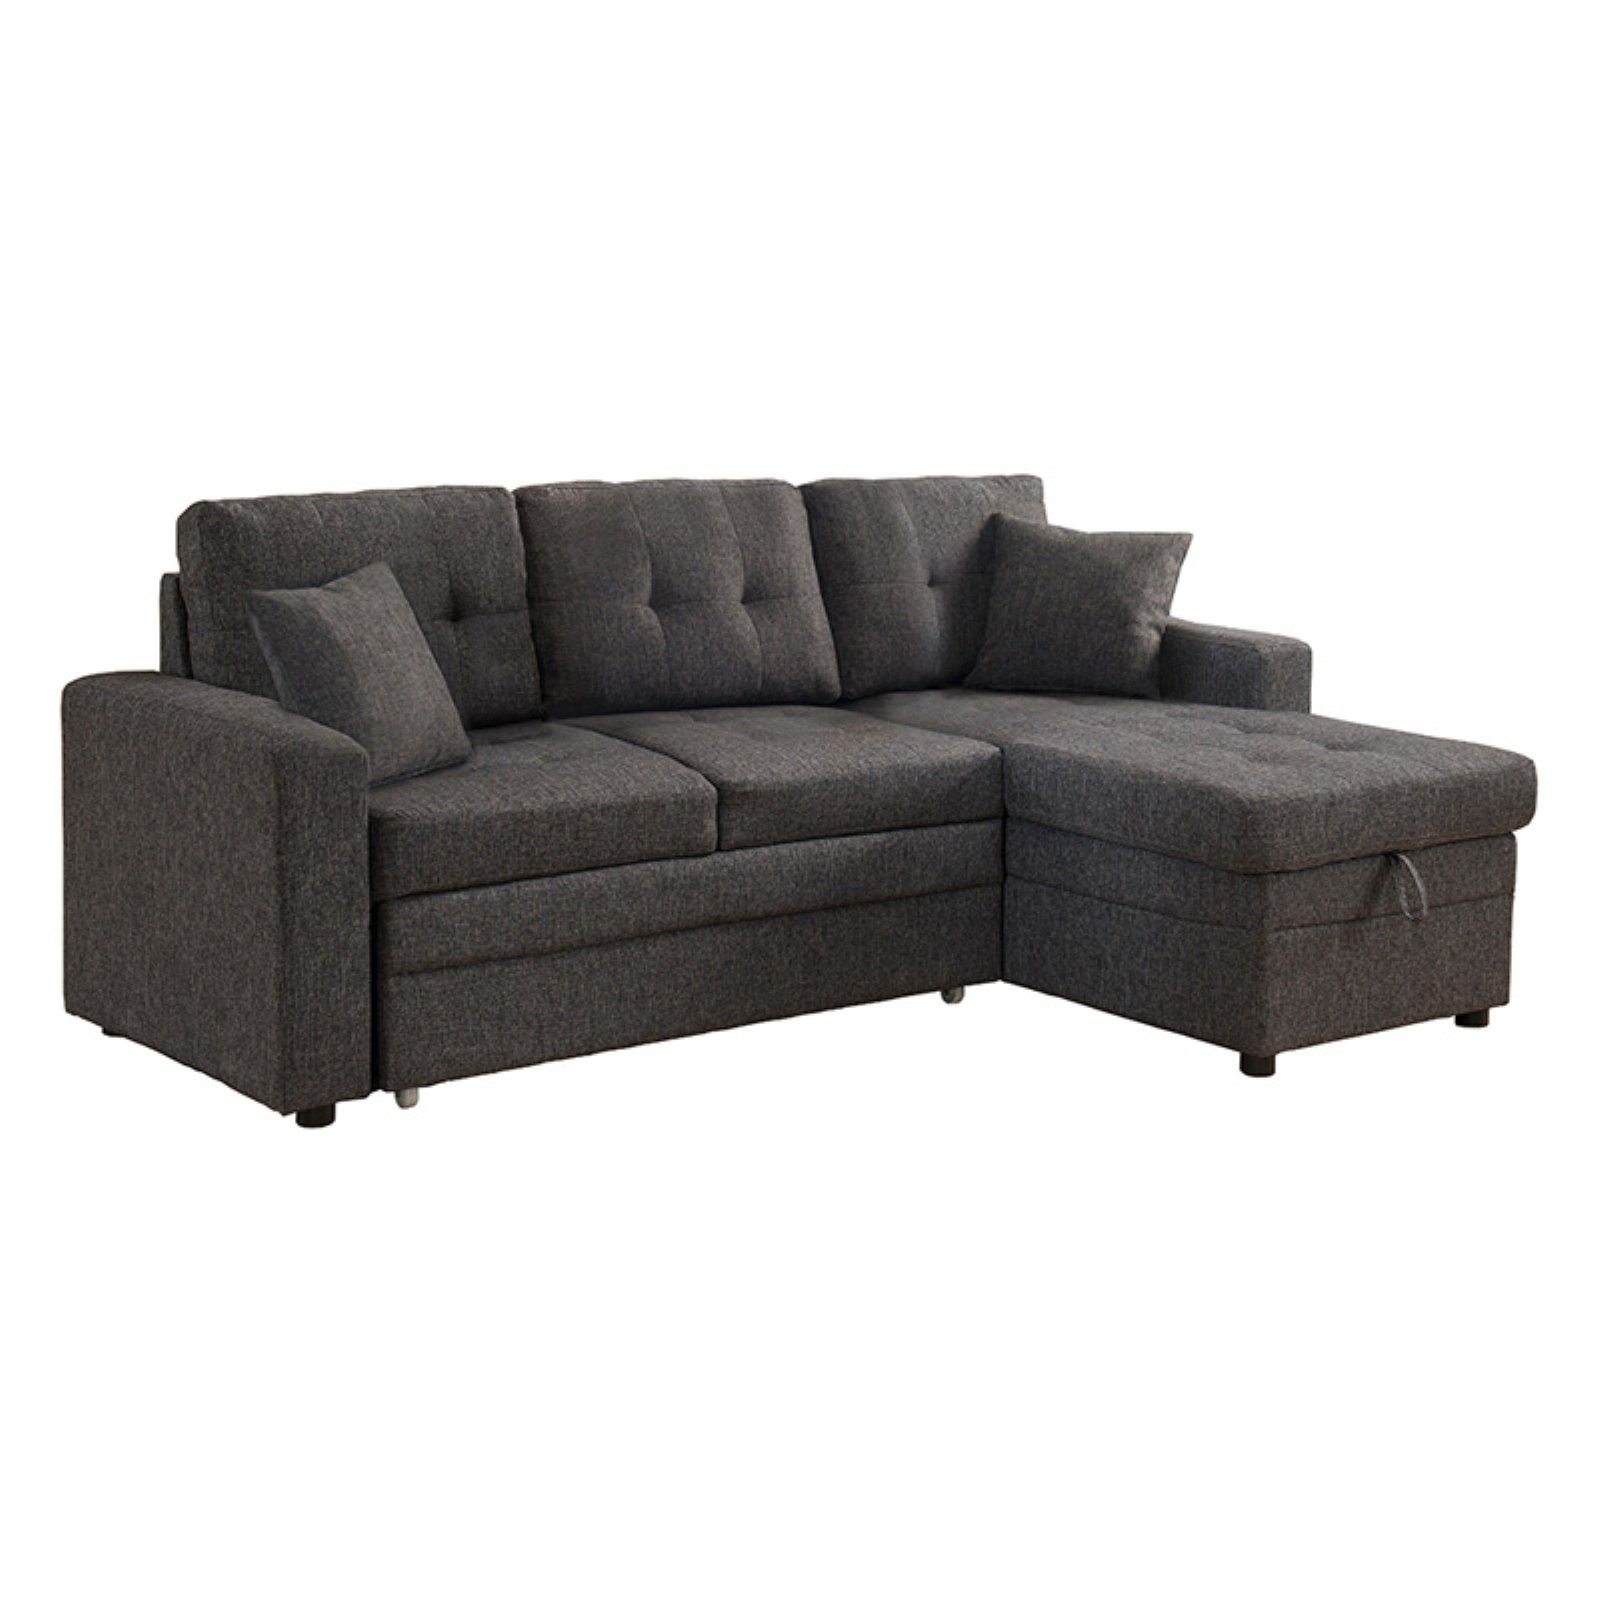 Milton Greens Stars Darwin Sectional Sofa With Storage And Pull Out Bed Gray Sectional Sleeper Sofa Cheap Couch Pull Out Bed